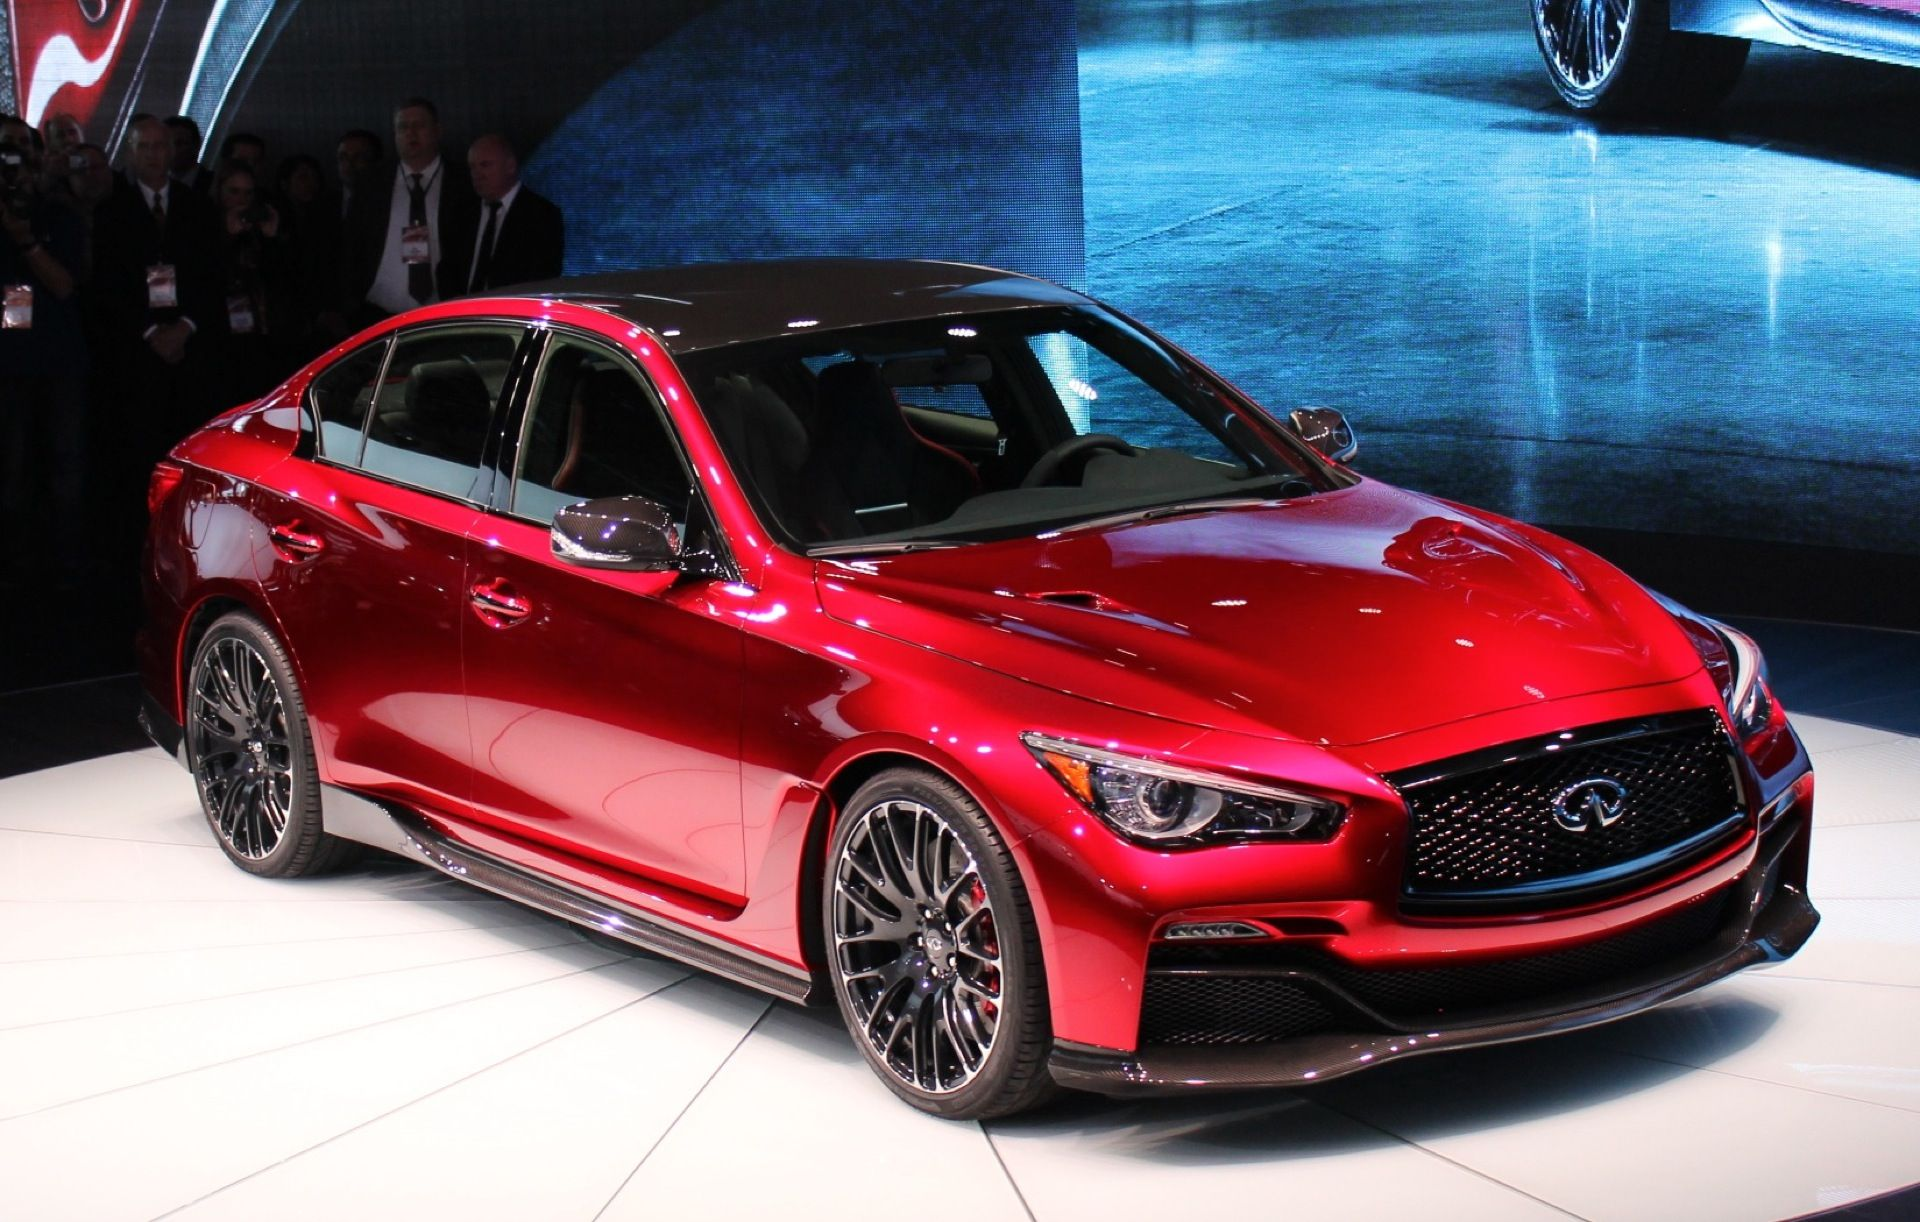 2015 Infiniti Q 50 Eau Rouge Review and Price There will be